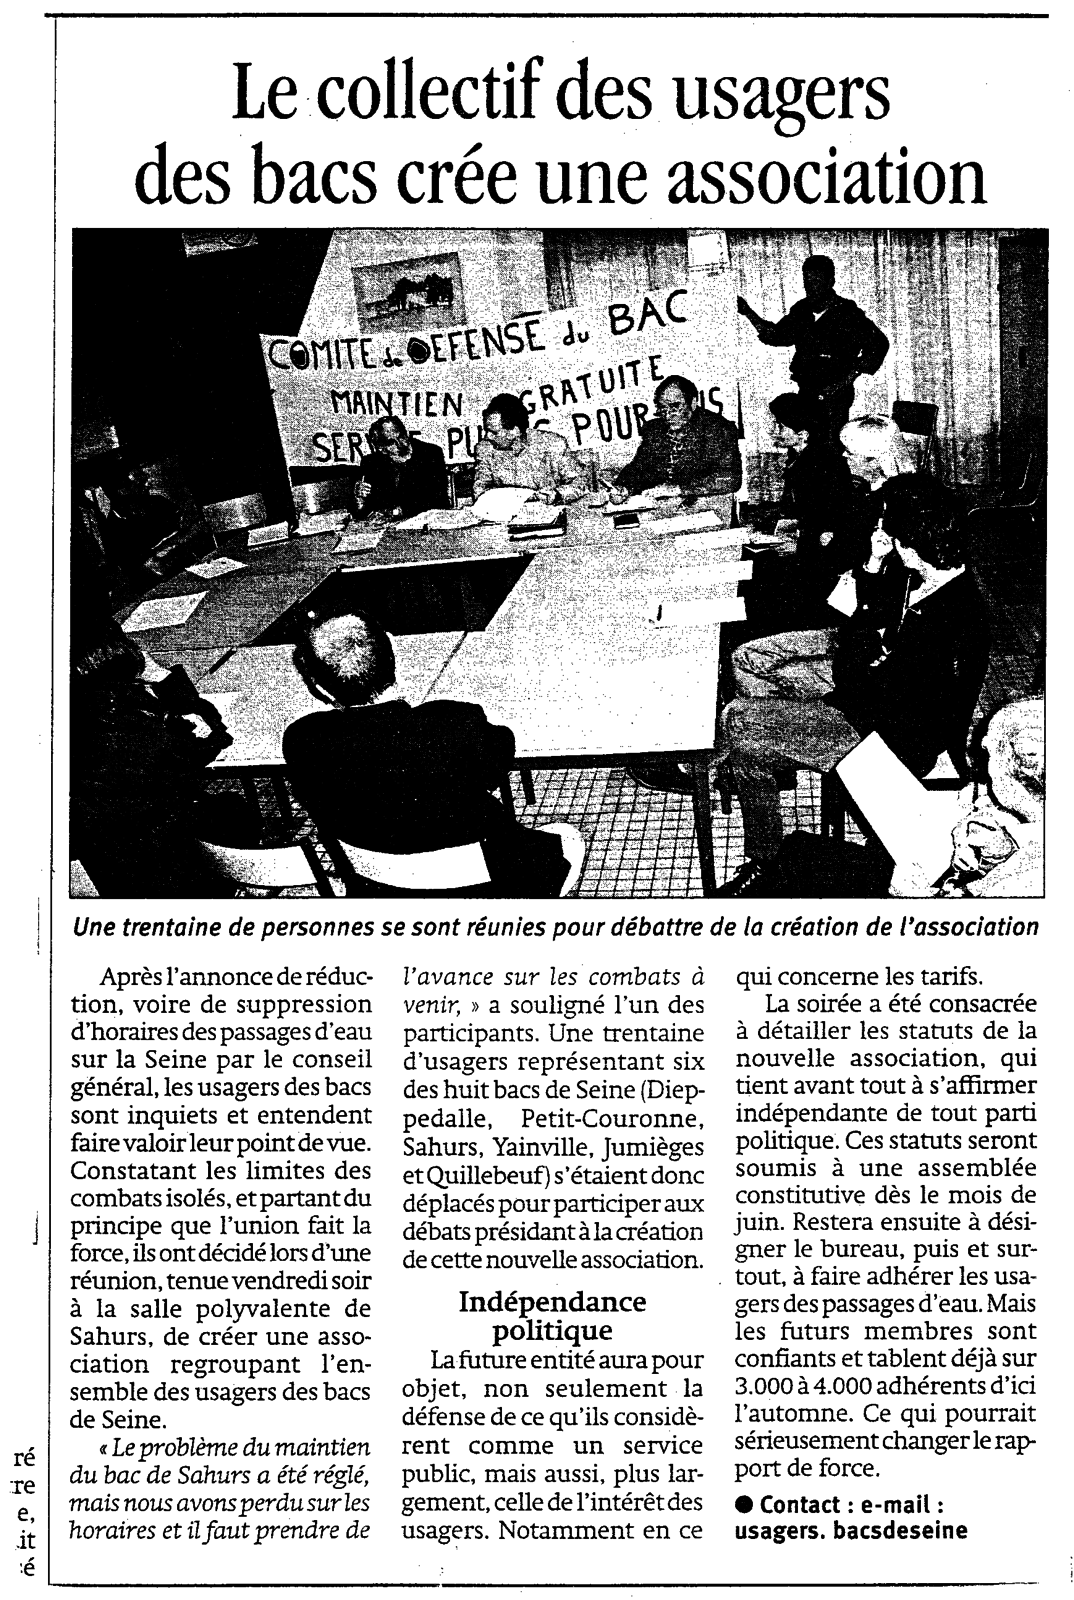 JUIN 2003 CREATION DE L'ASSOCIATION